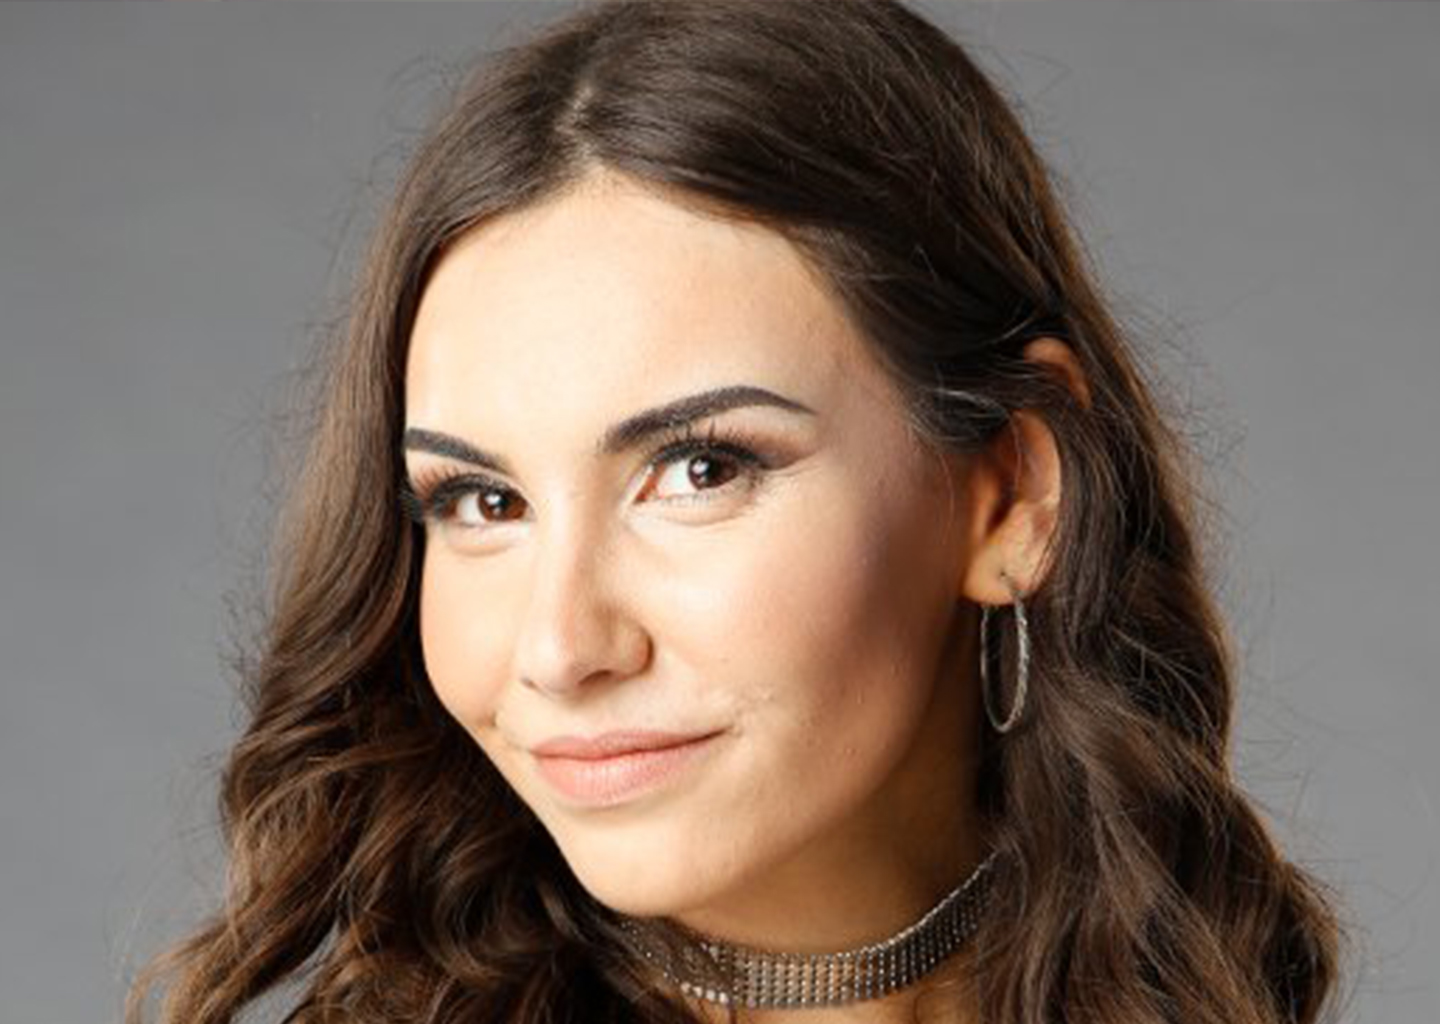 Alicia Atout signs multi-year deal with MLW